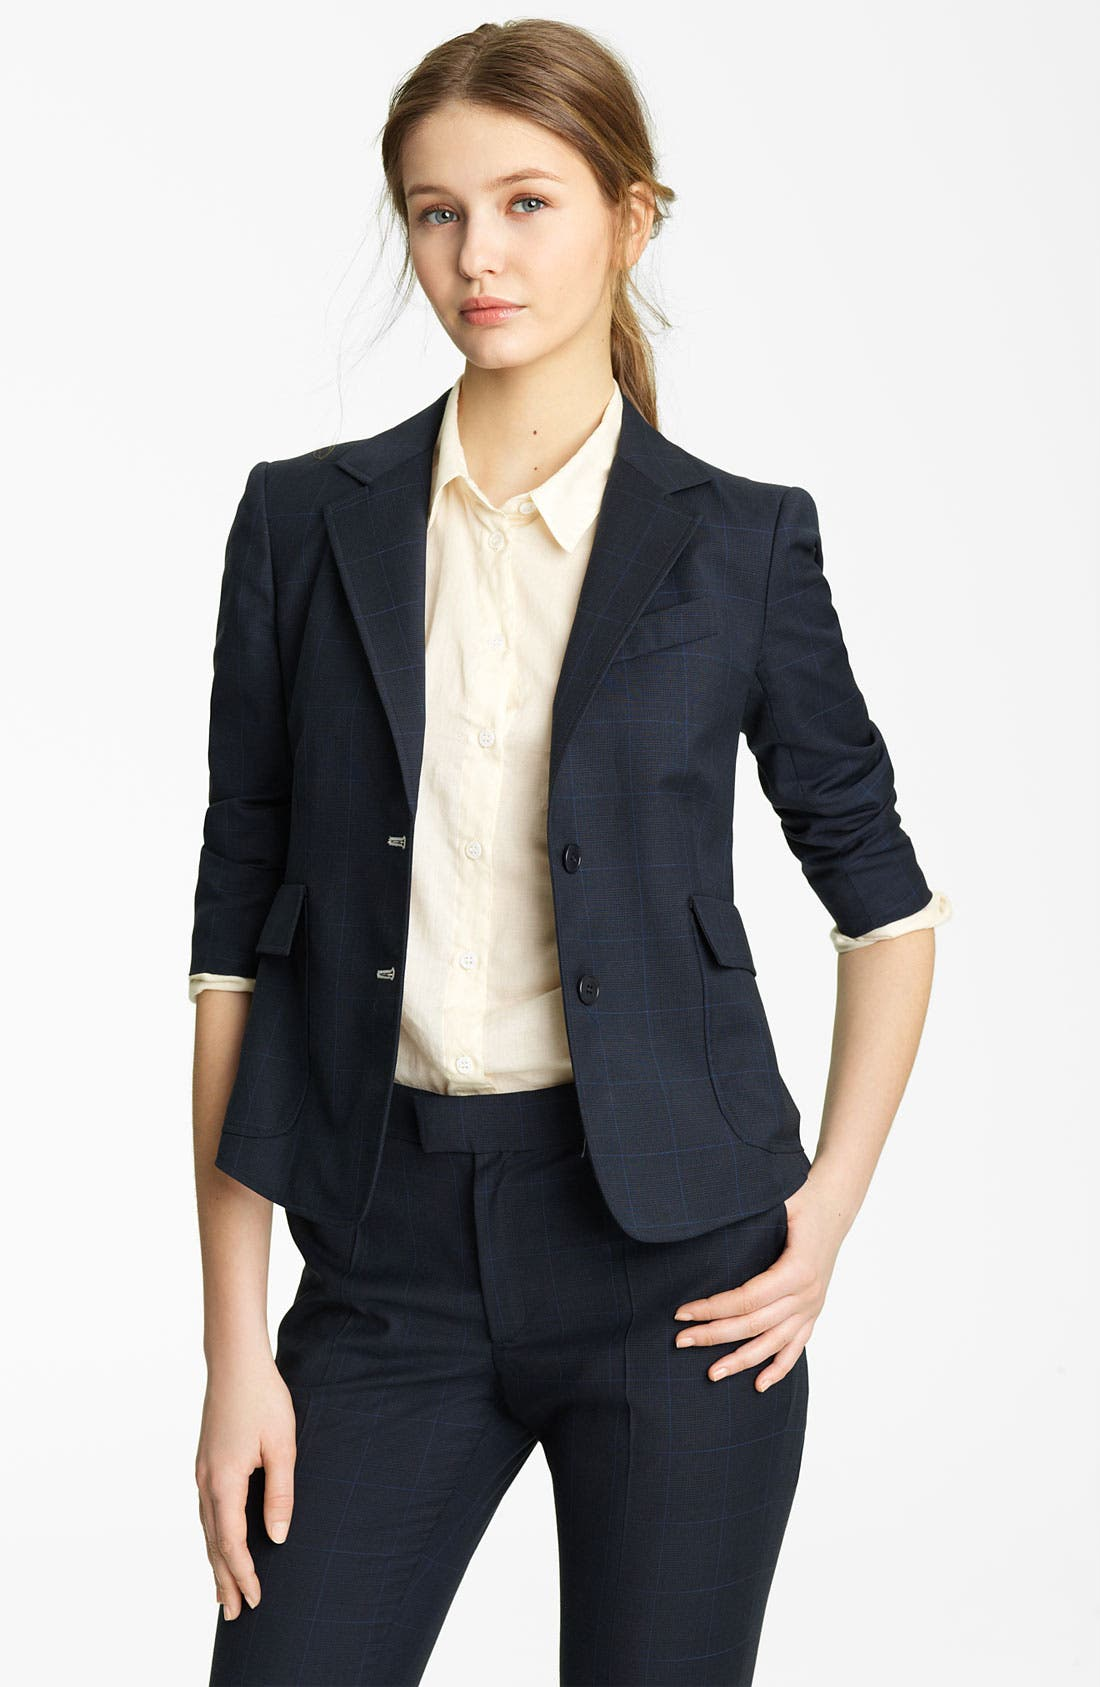 Alternate Image 1 Selected - Band of Outsiders 'Schoolboy' Stretch Wool Blazer